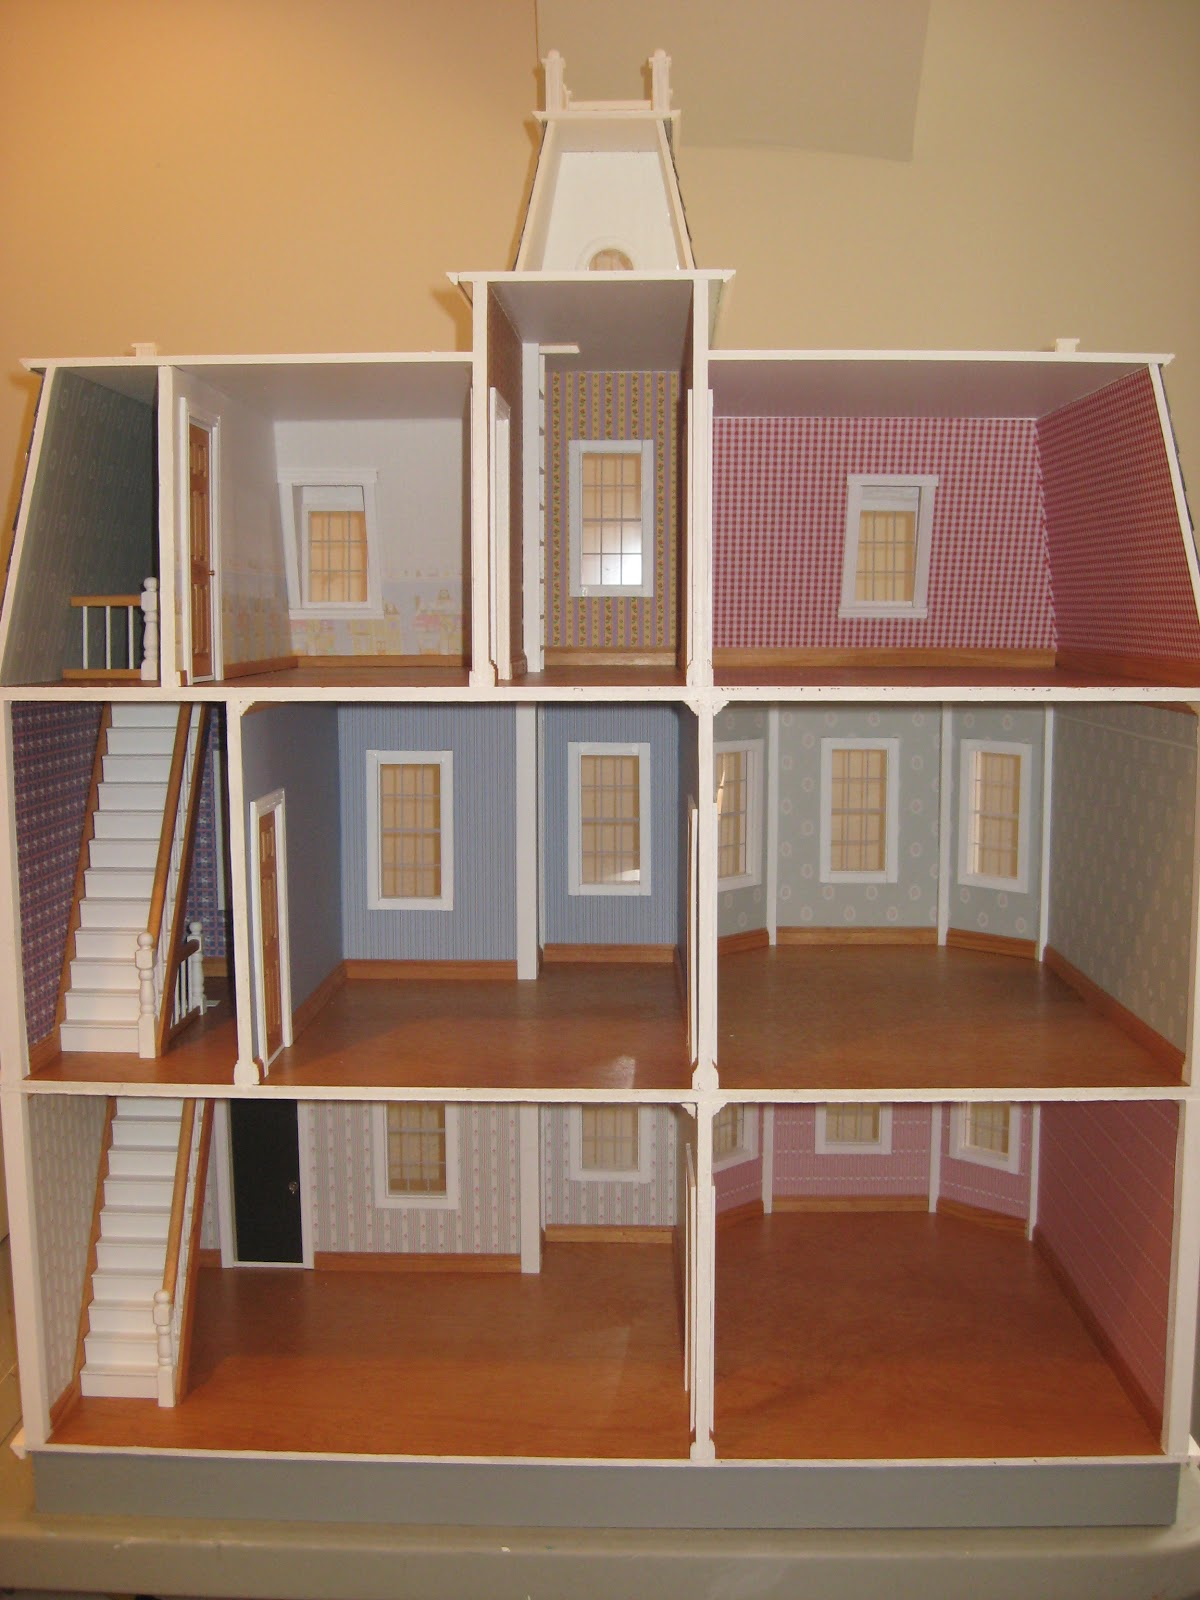 lighting for dollhouses. This Includes Electric Tapewire Lighting Run Throughout The House With 6 Ceiling Lights Installed And Several Outlets To Plug In Additional Lamps. For Dollhouses